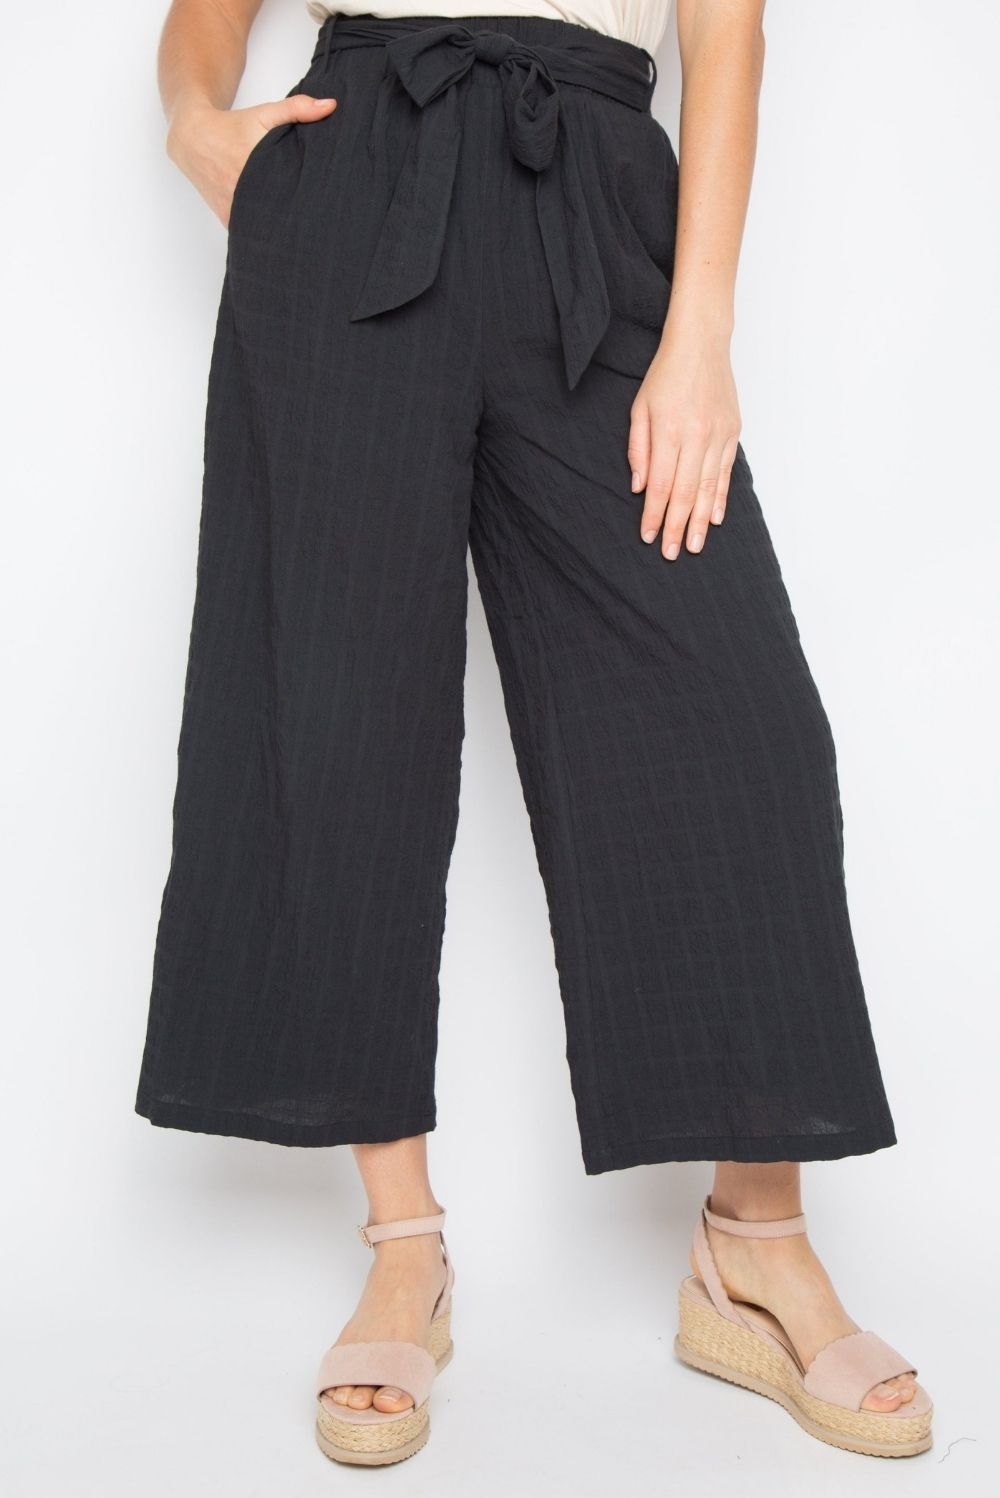 RO Corinth Pant In Black